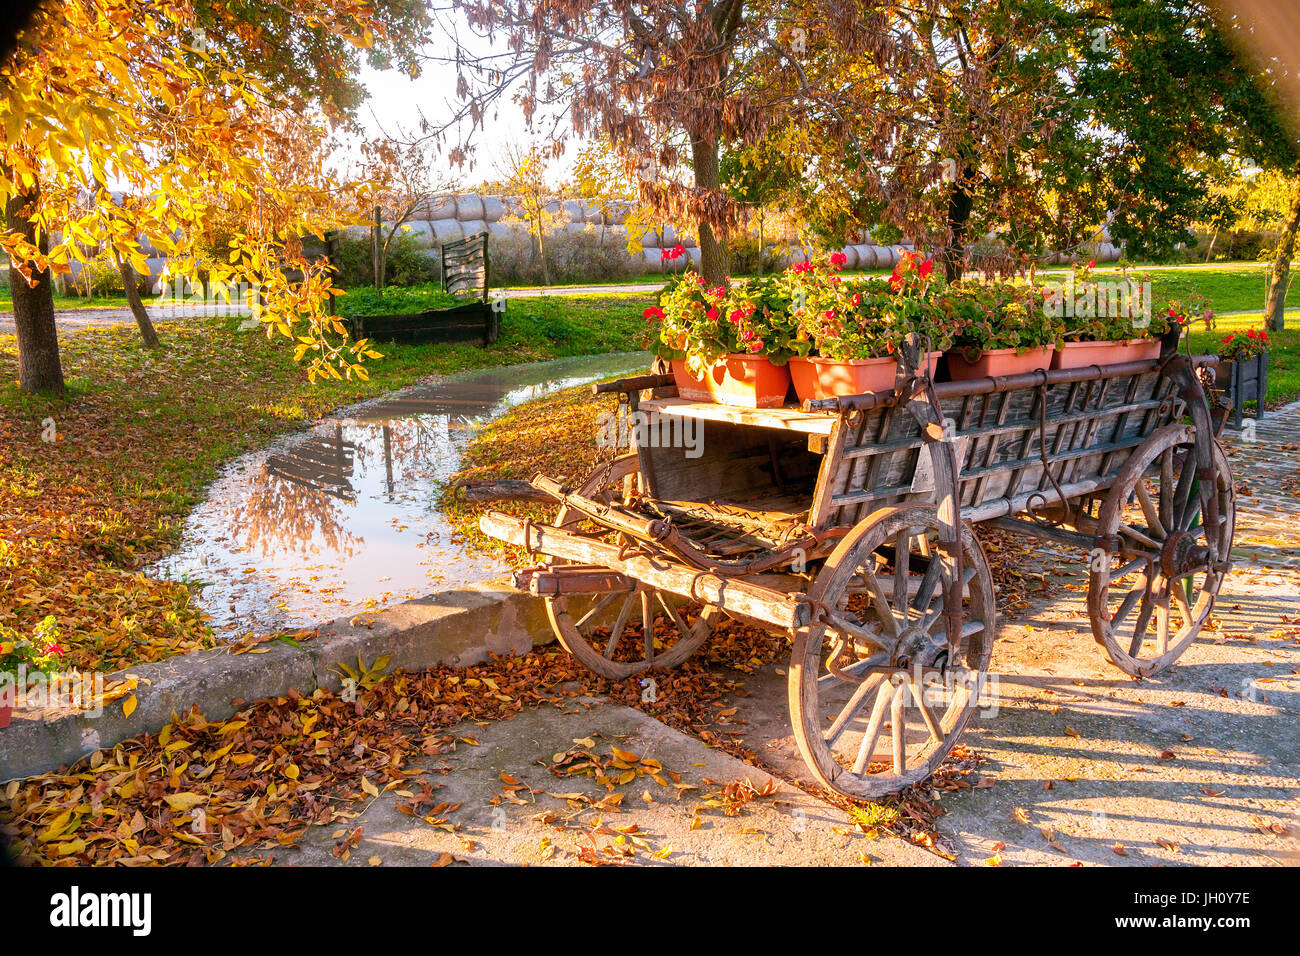 Autumn Colour With A Old Display Farm Wagon Filled With Flowers By Stock Photo Alamy